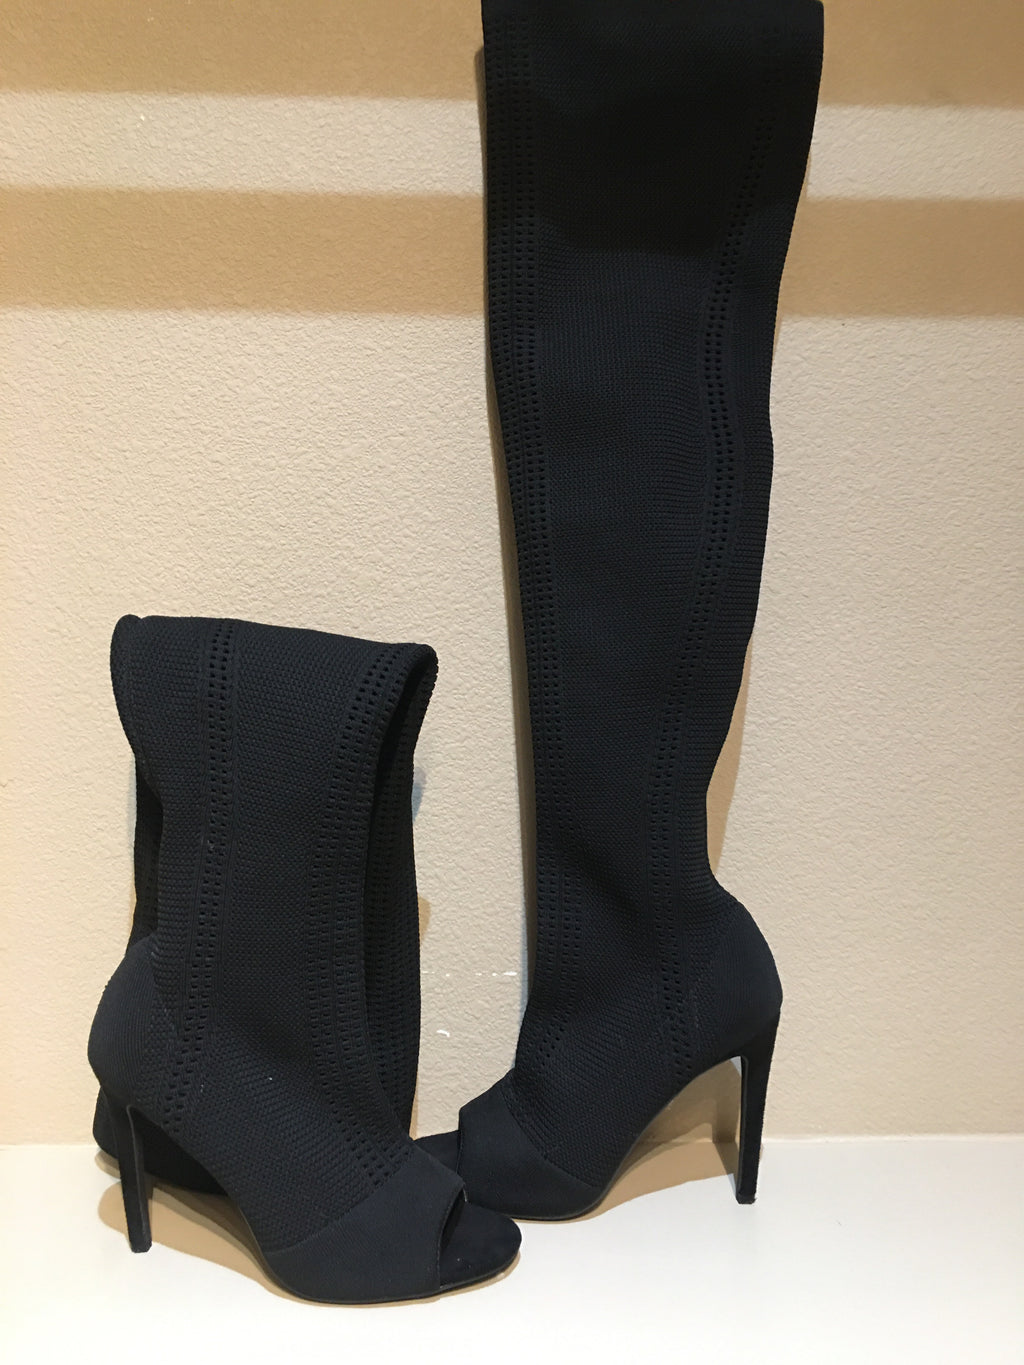 Cape Robbin Over the Knee Peep Toe Boot: Size 8.5